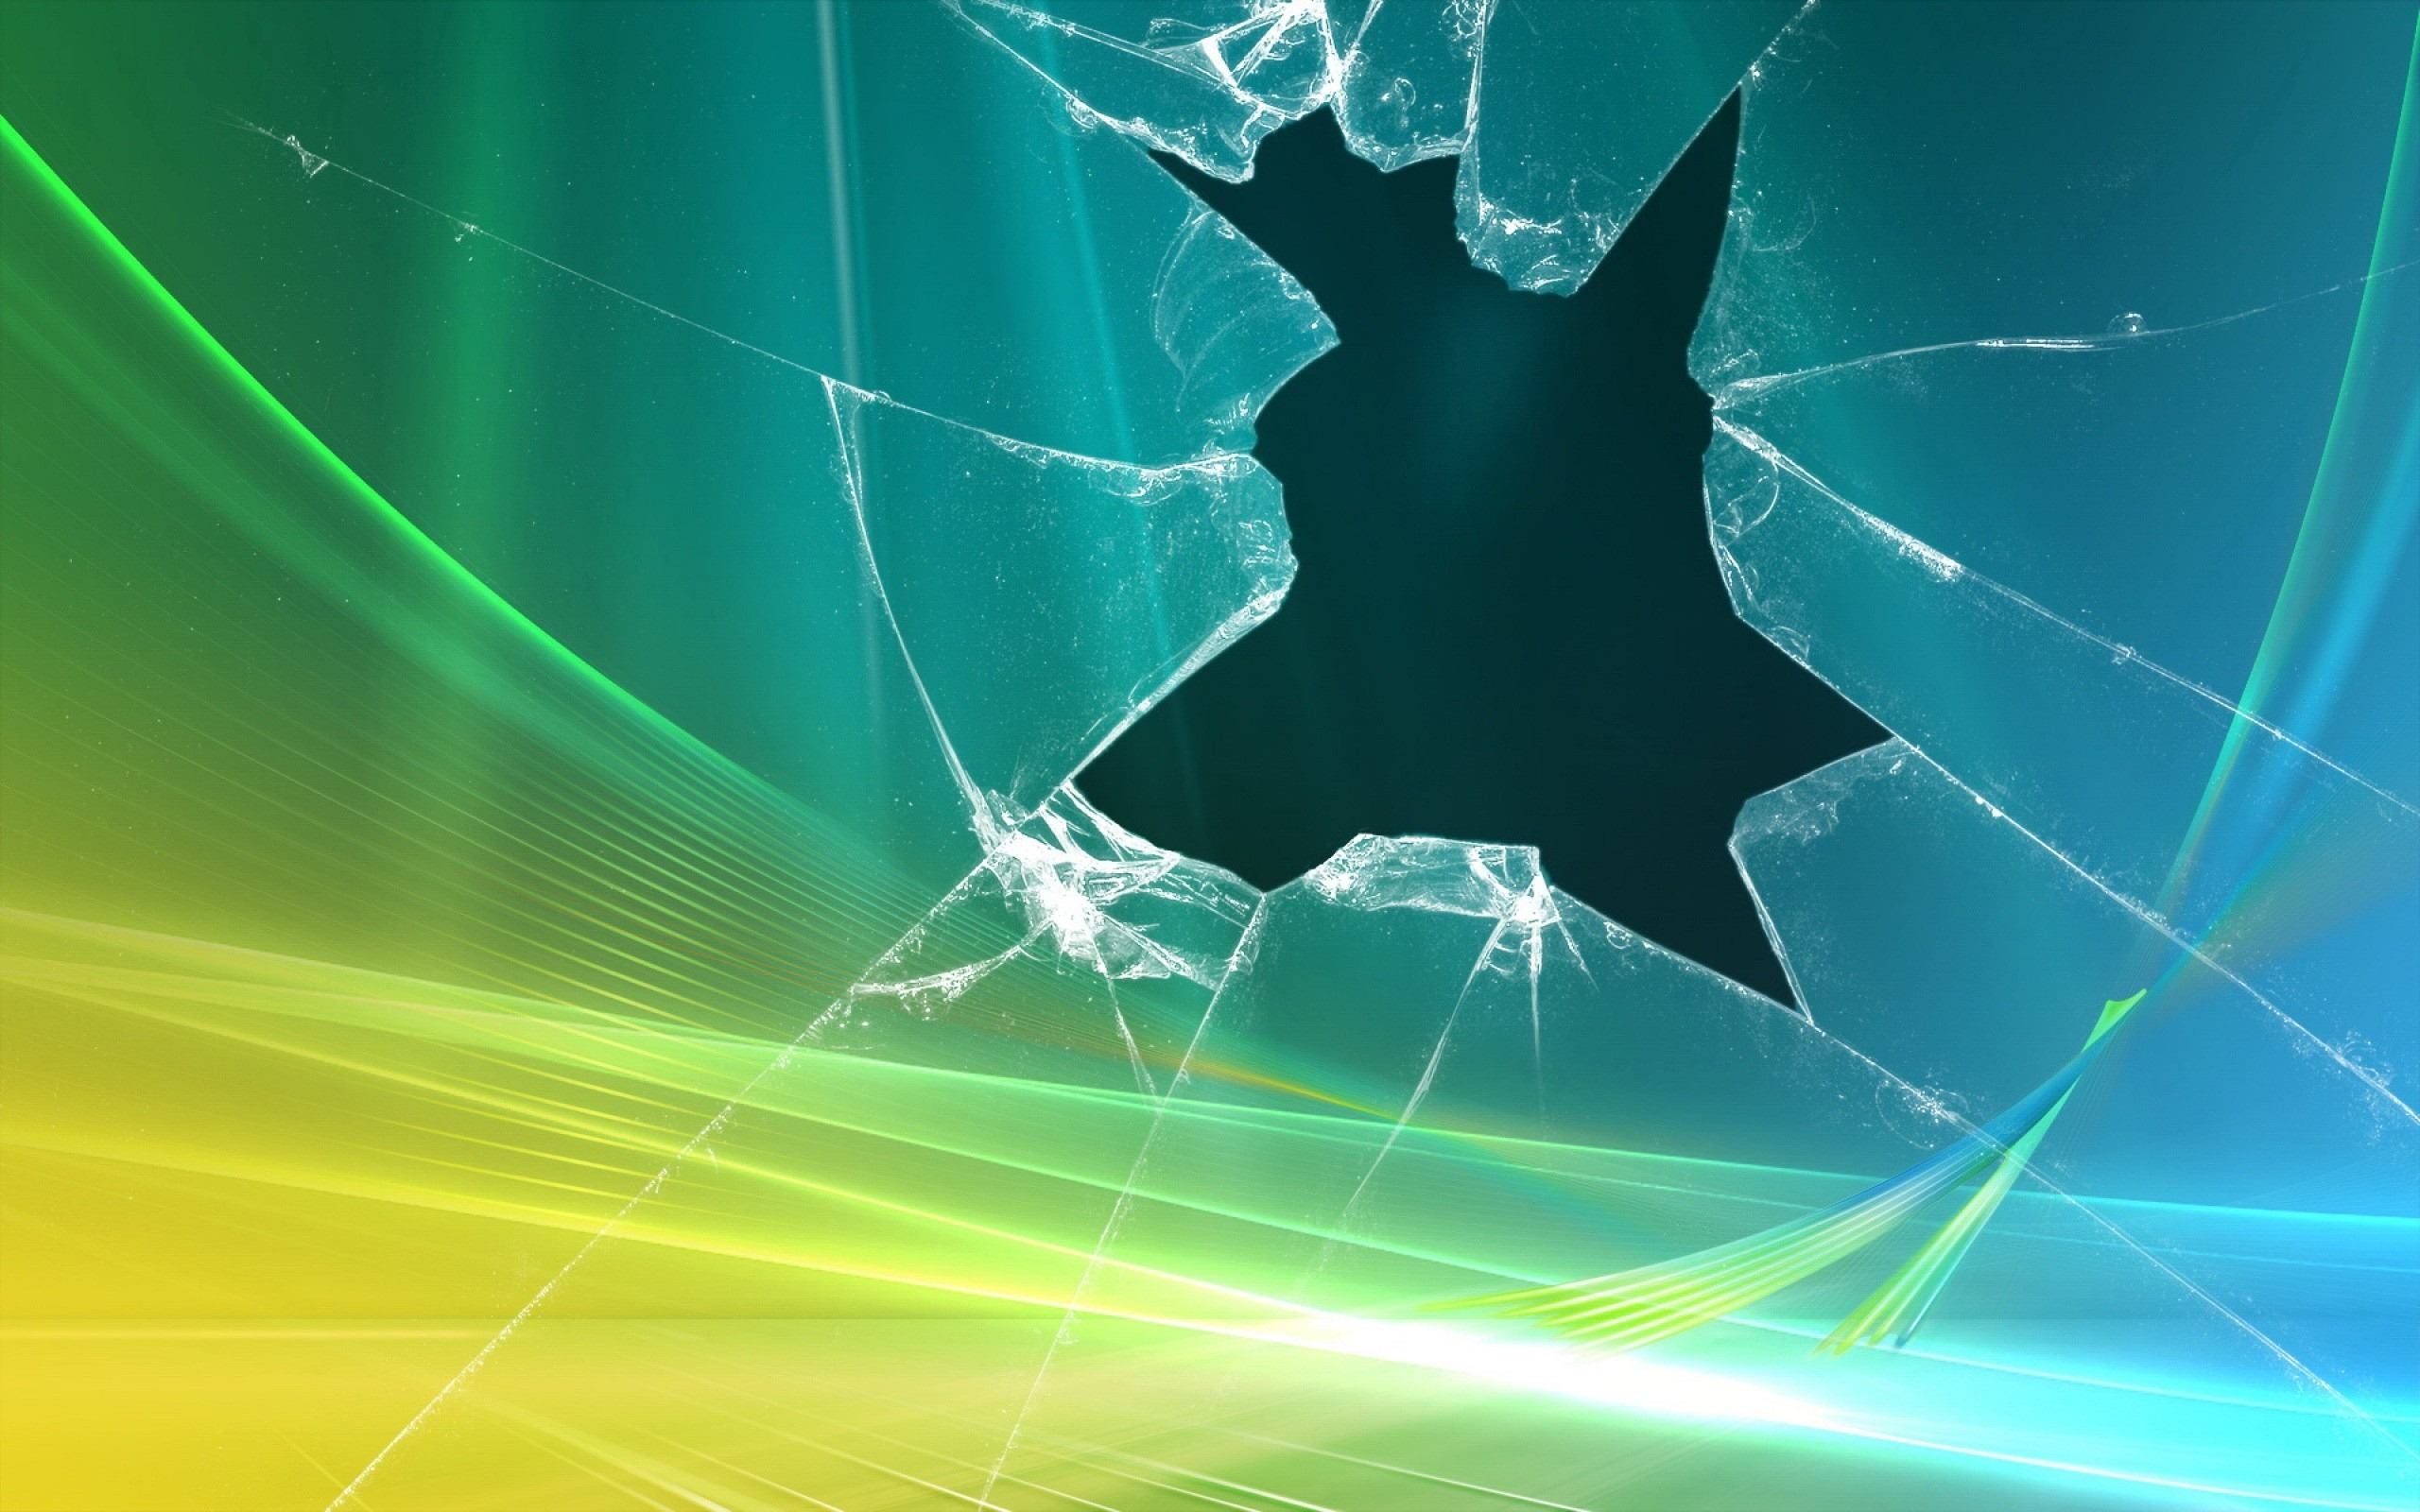 Desktop Wallpaper, Broken Glass